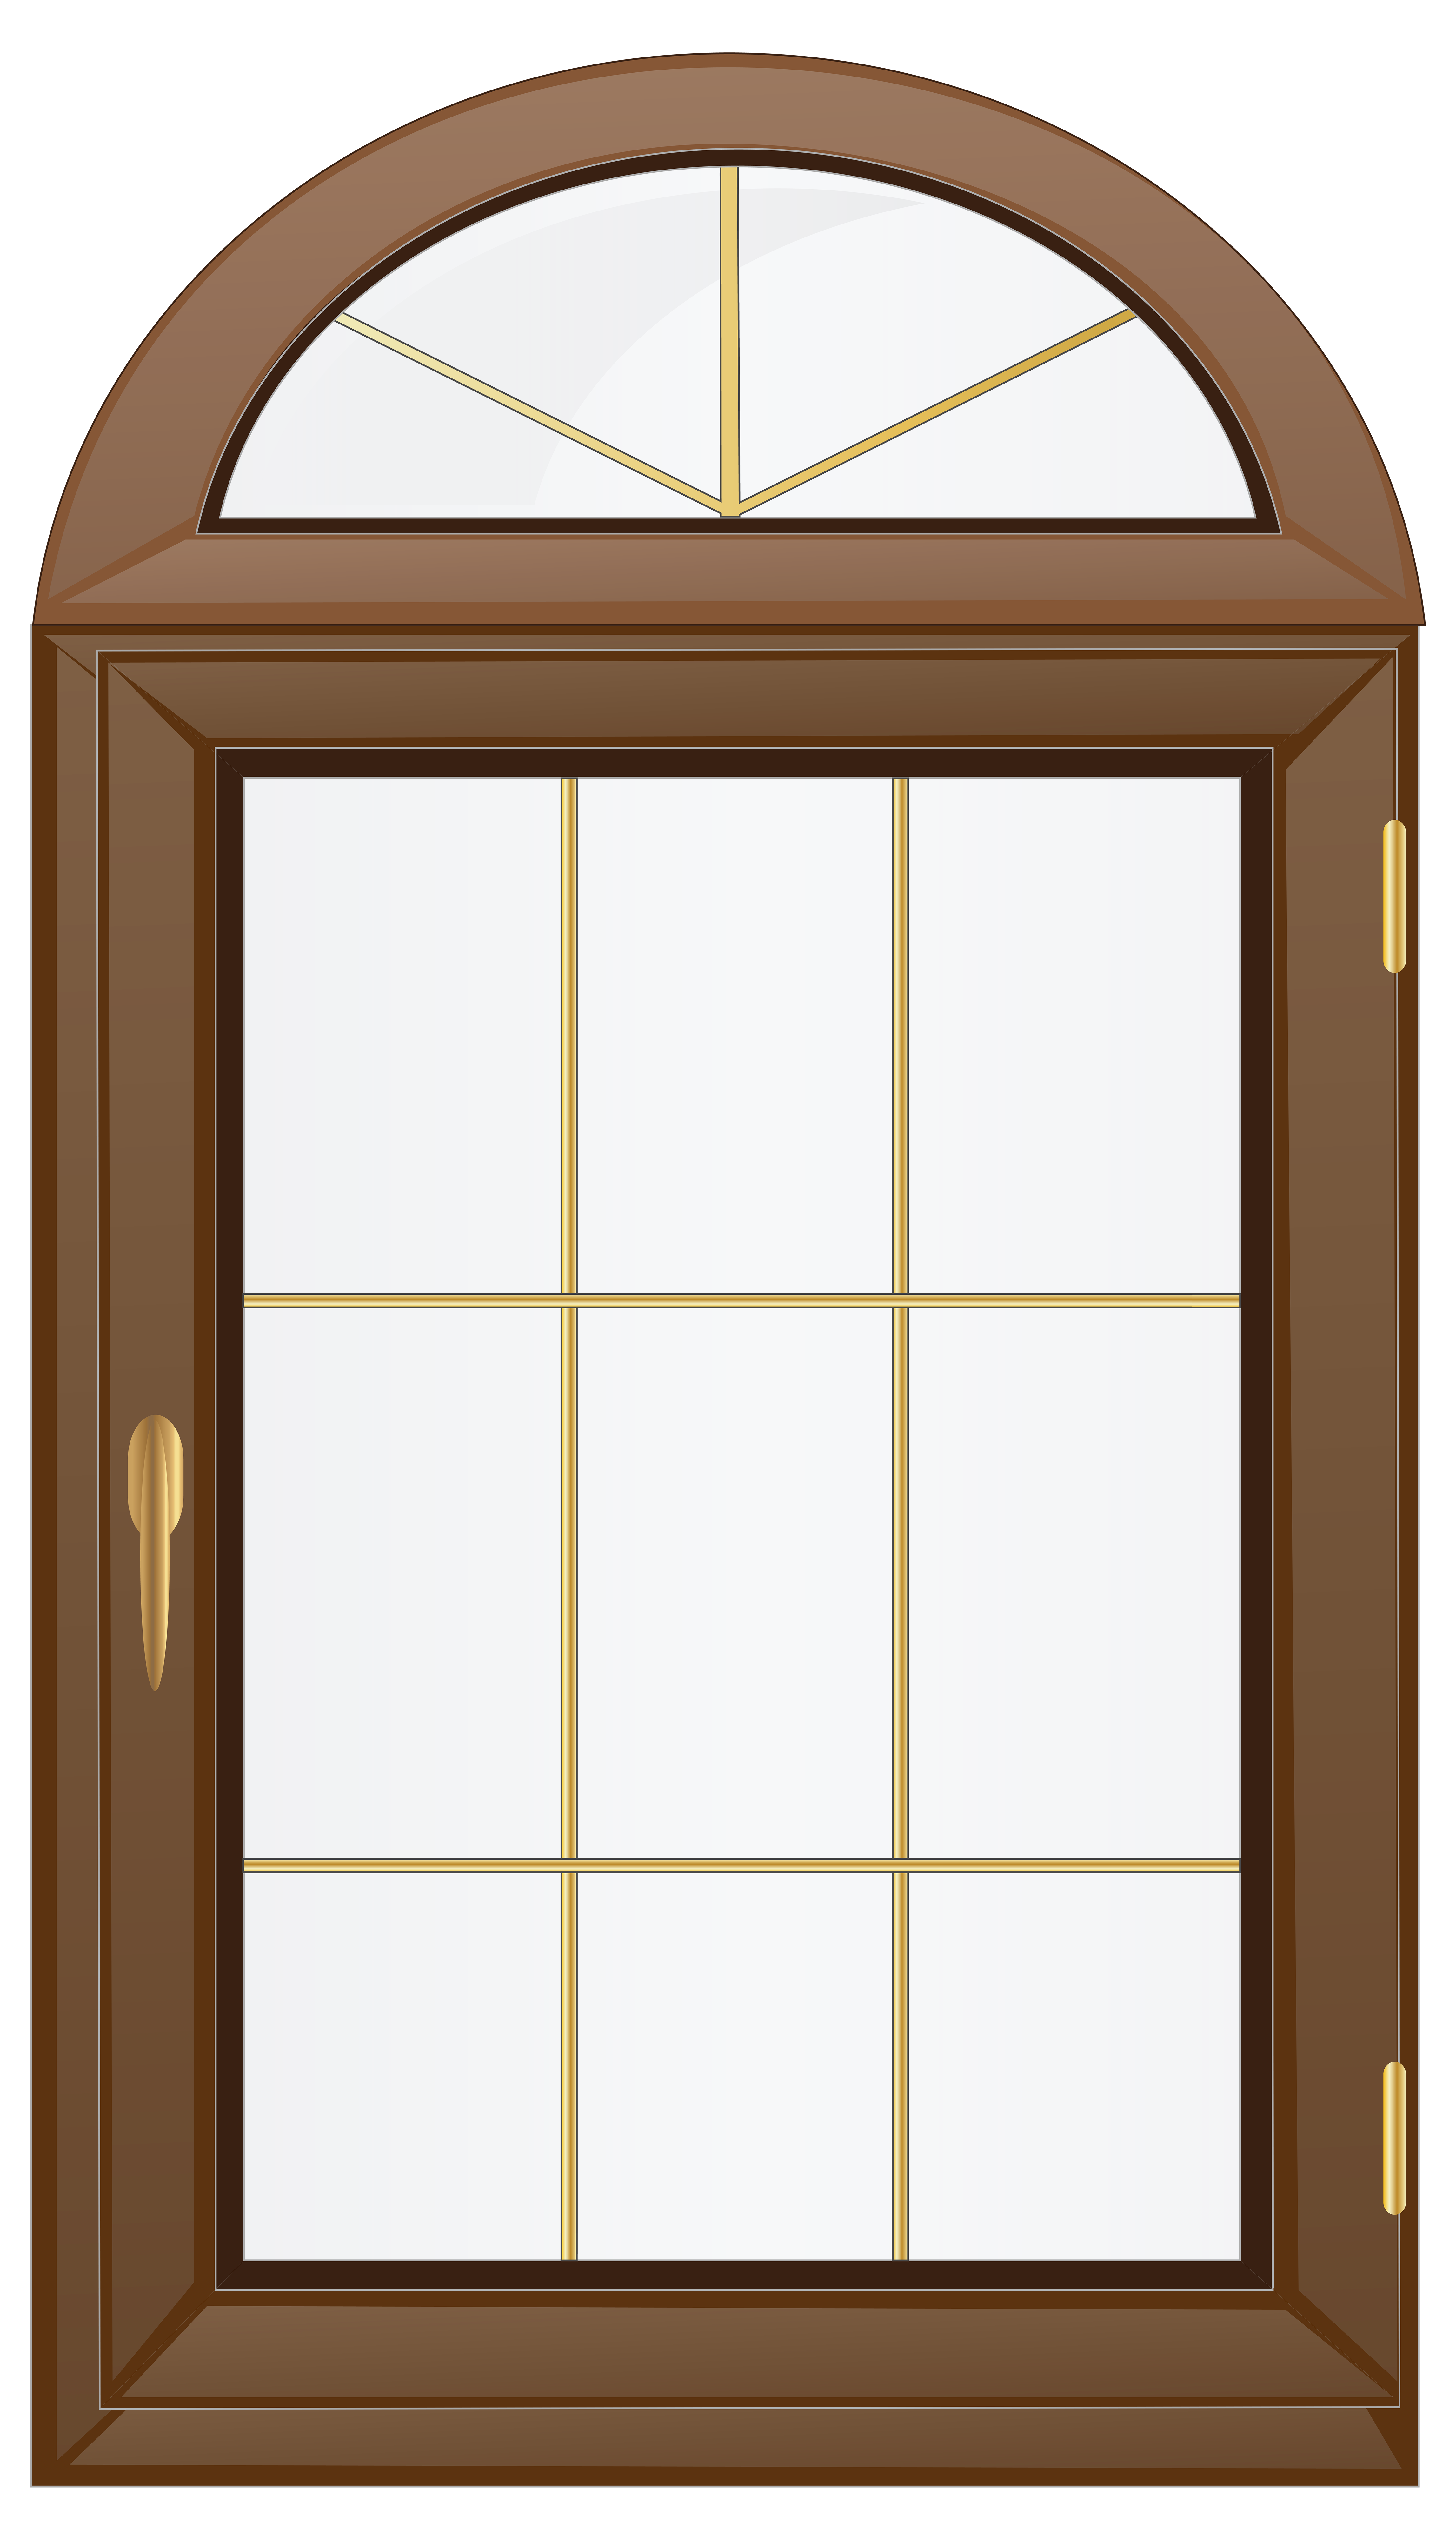 Window clipart transparent image royalty free Transparent Brown Window PNG Clip Art - Best WEB Clipart image royalty free